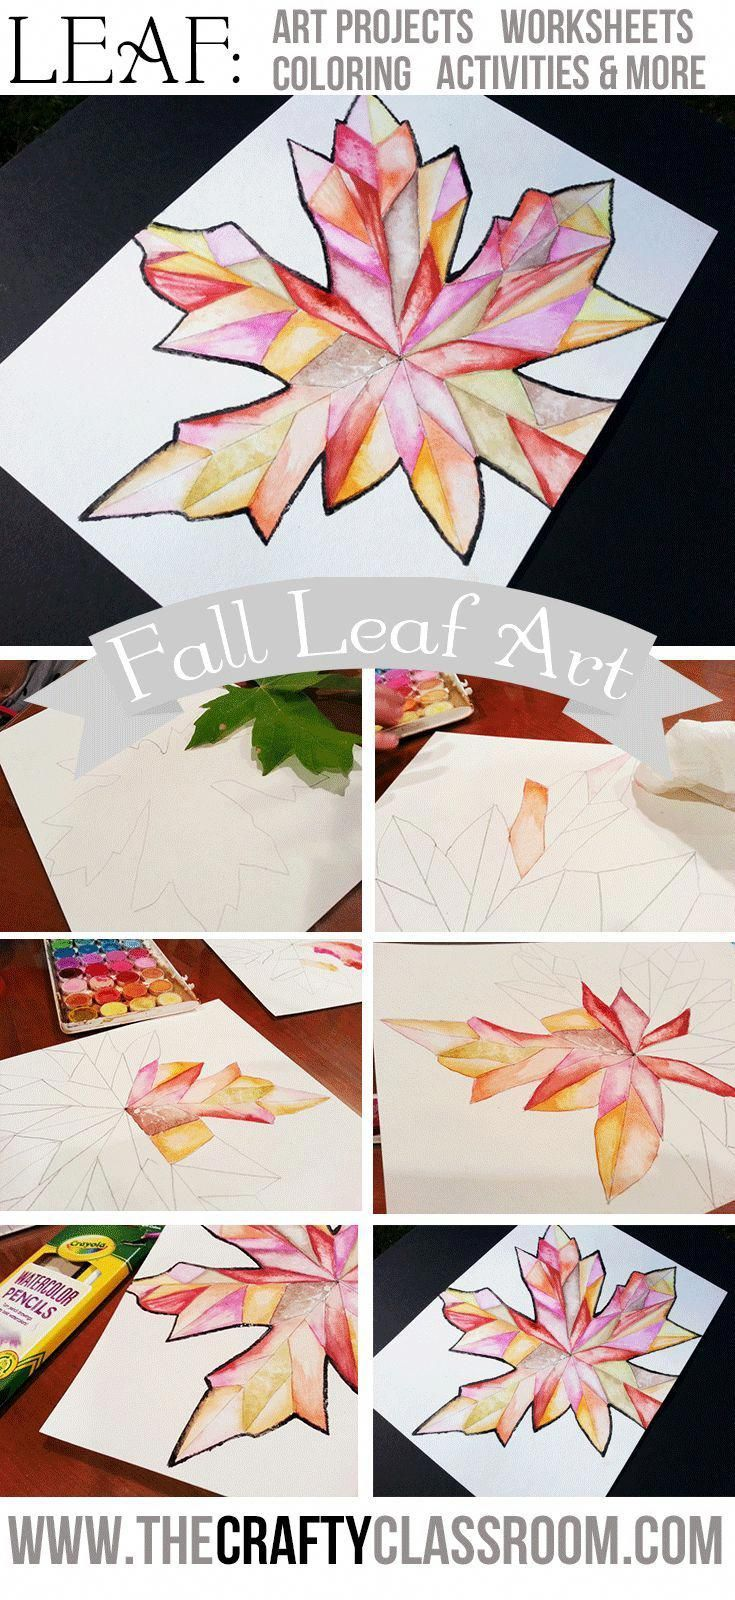 Fall Leaf Art Project is part of Fall leaf art projects, Autumn leaves art, Kids art projects, Fall art projects, Art projects, Leaf art - There are so many amazing Fall Leaf Art Projects online that it's hard to go wrong! We've done quite a few over the years with great success, but this year I think we've hit gold